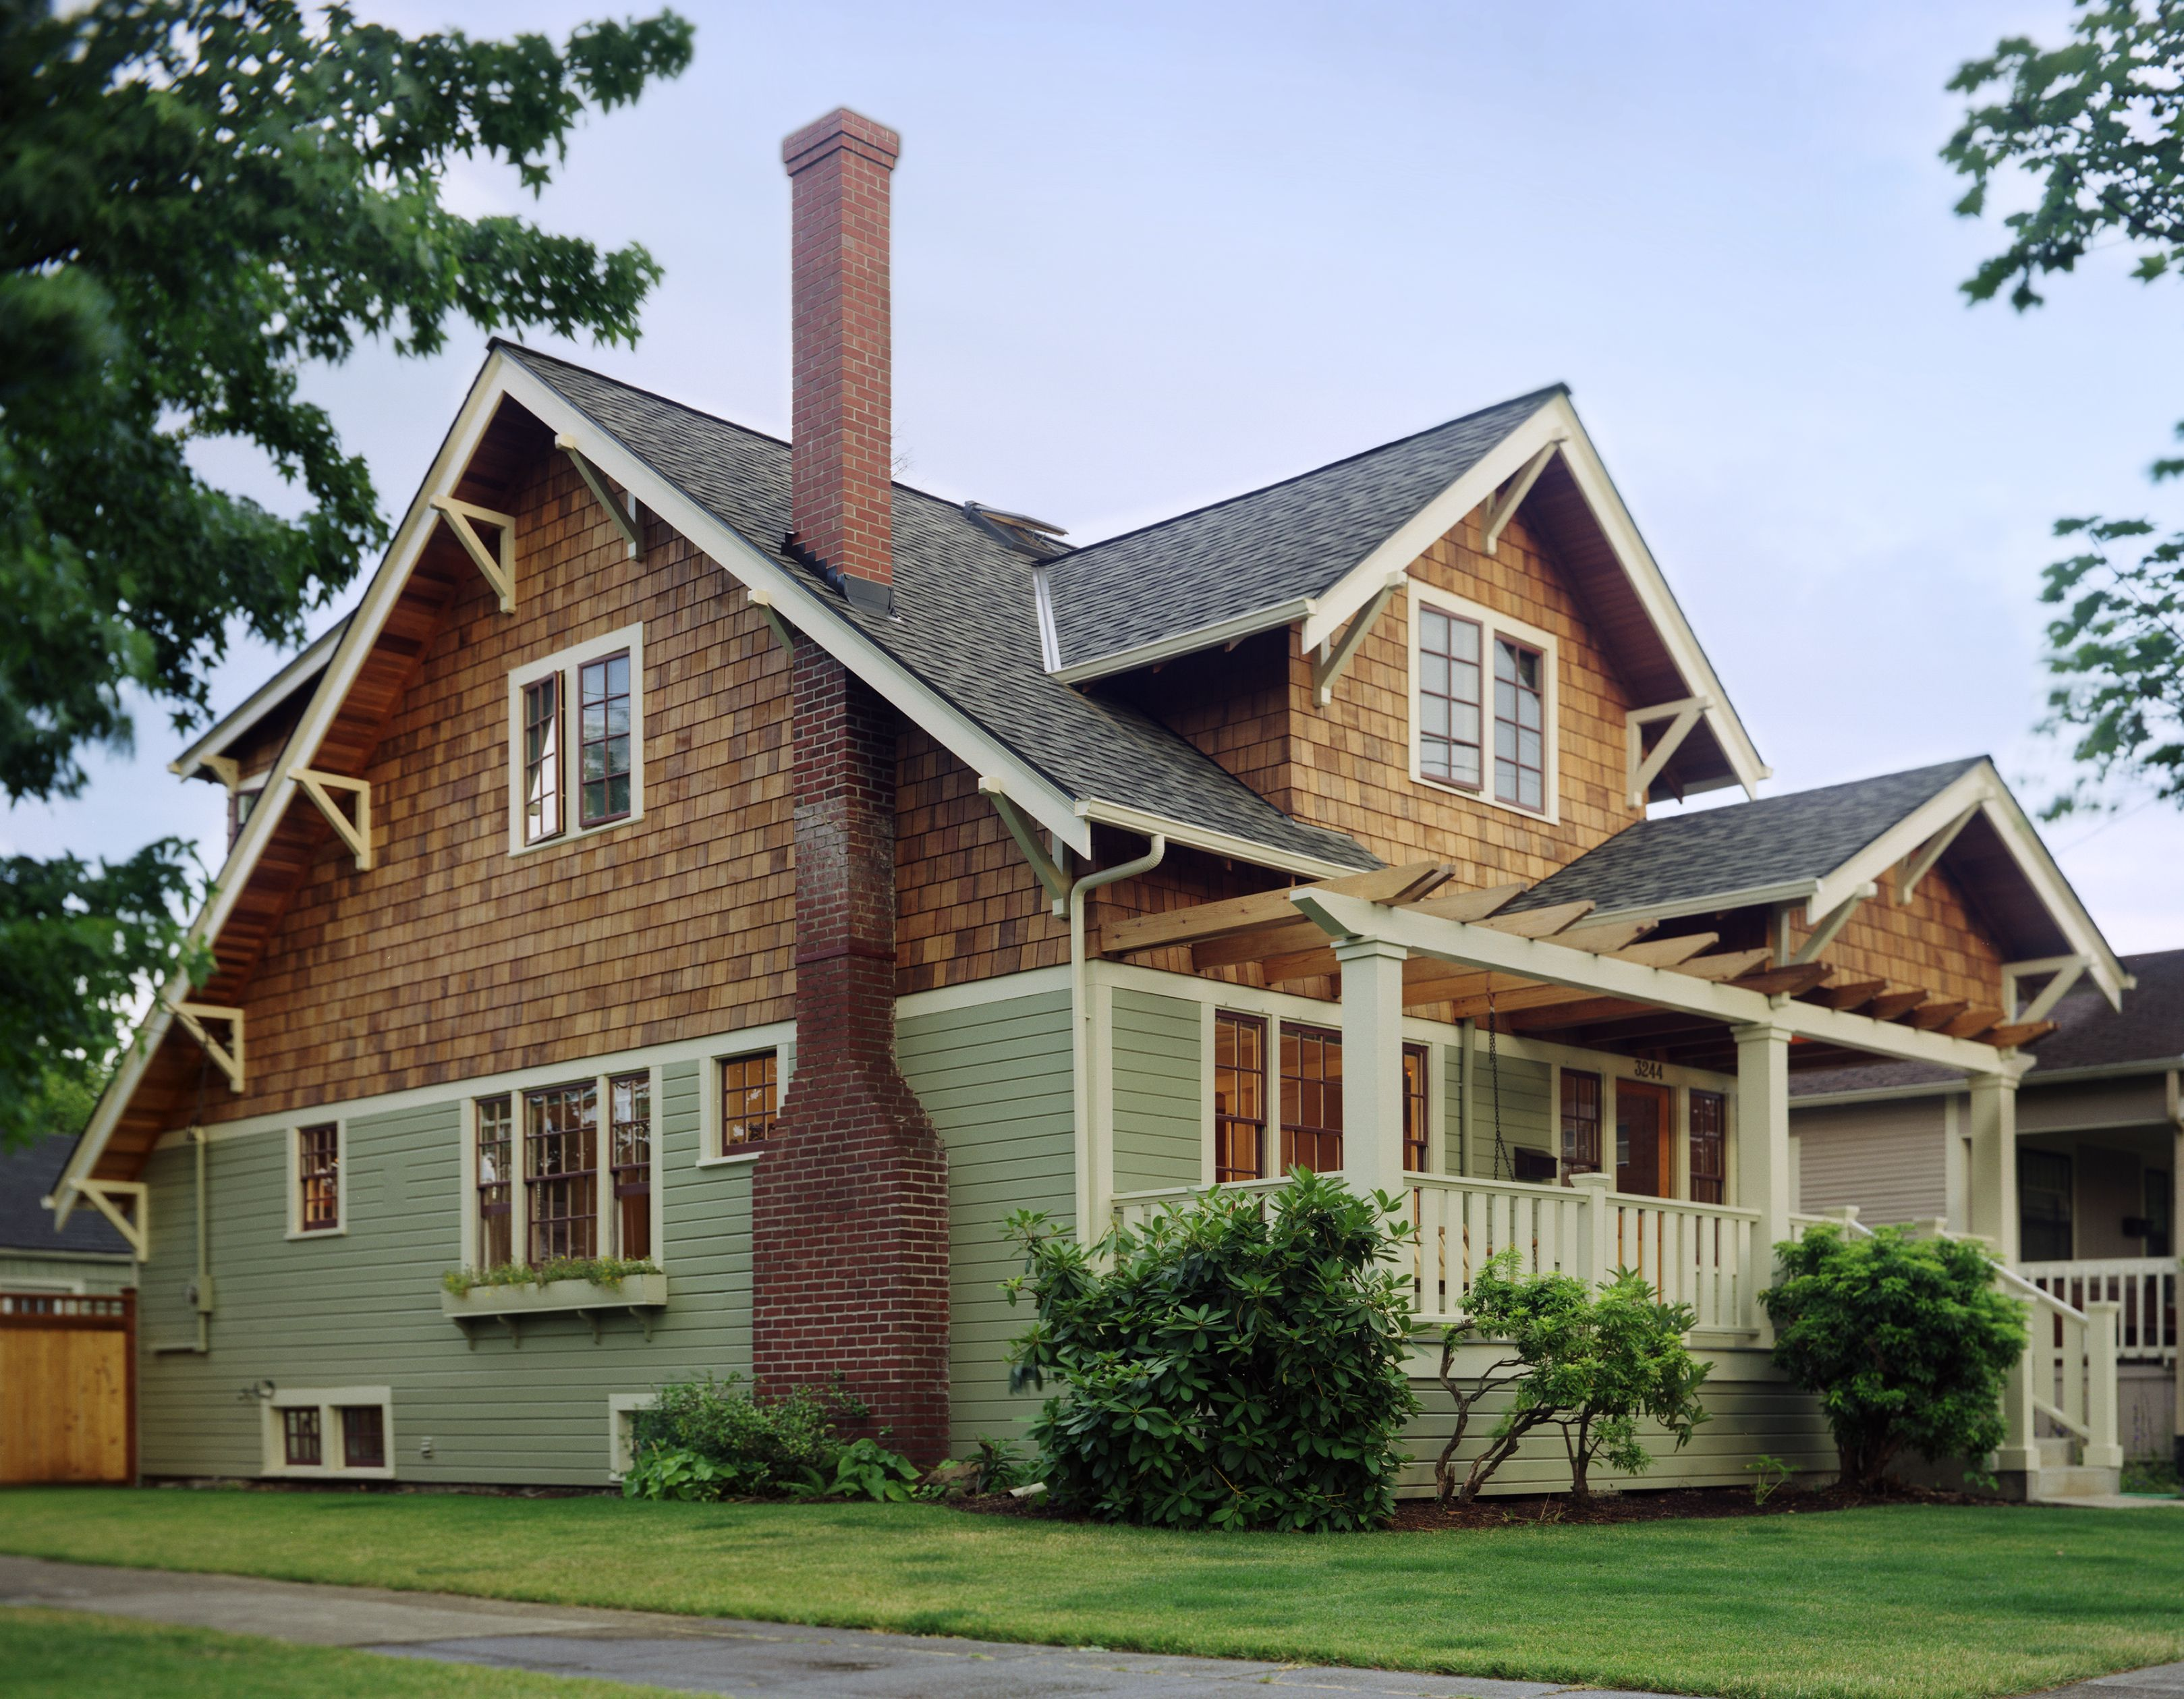 Pacific northwest architecture craftsman style house not for Pacific northwest house plans